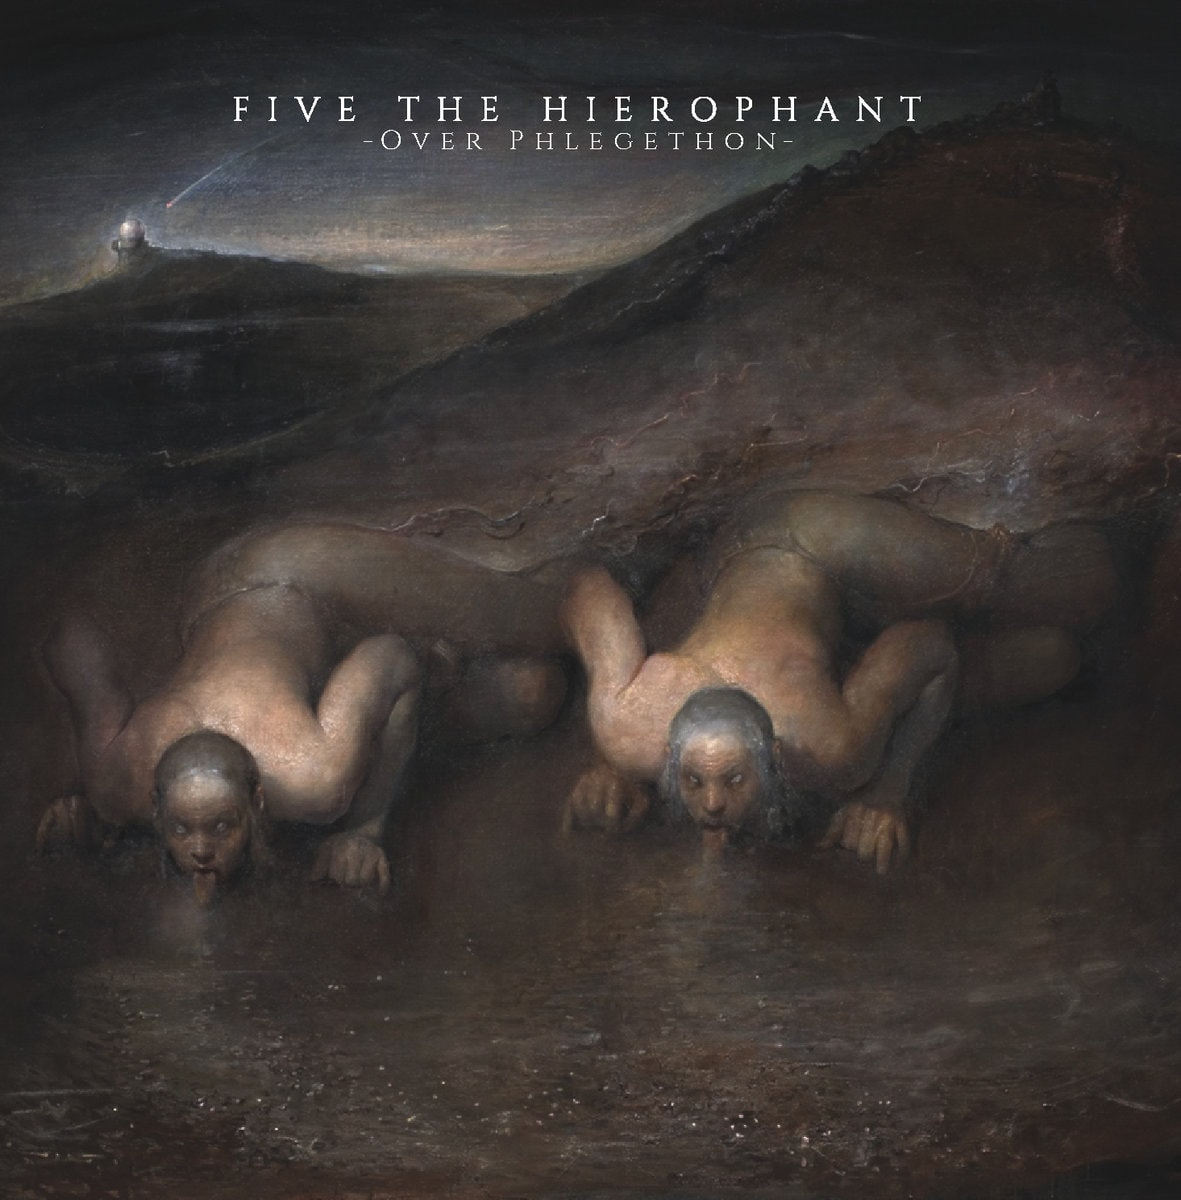 FIVE THE HIEROPHANT (GBR) – Over Phlegethon, 2017